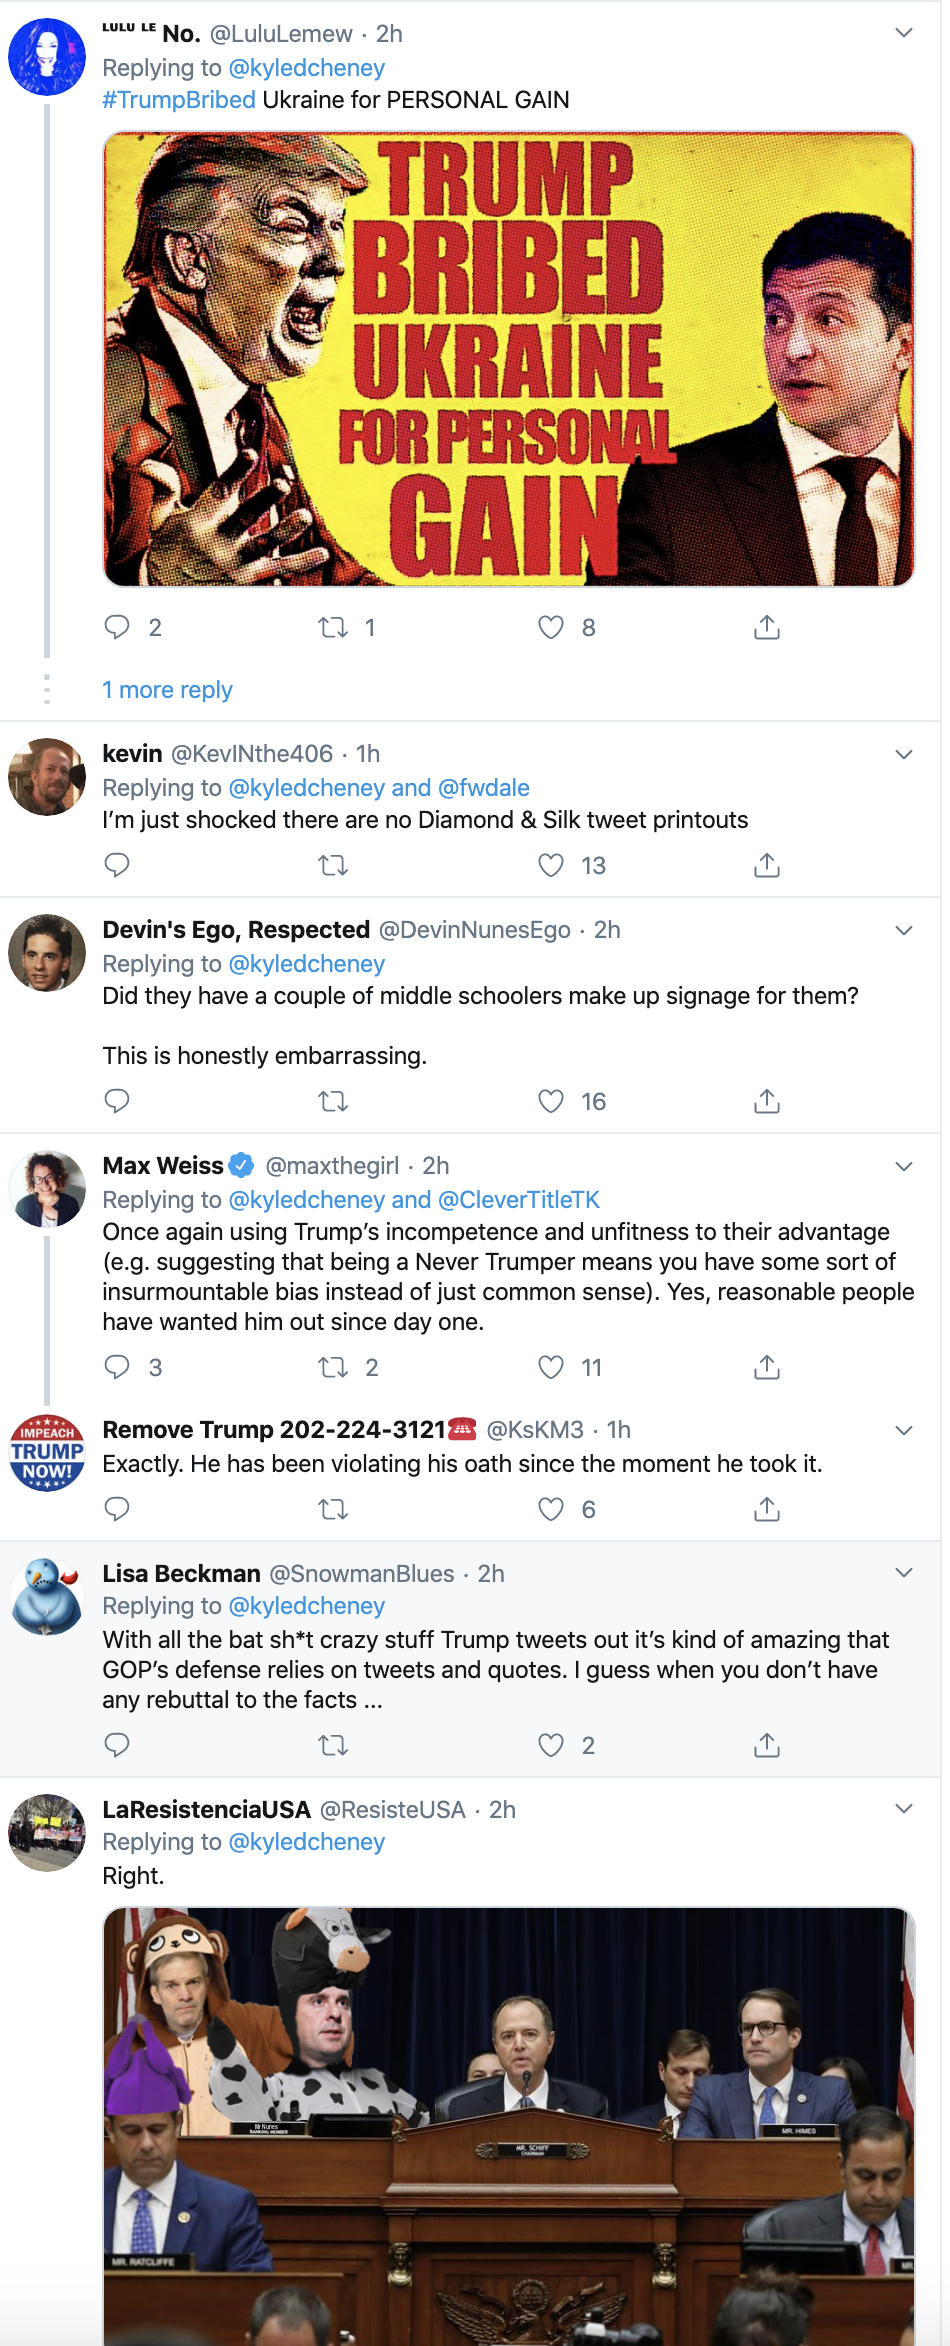 Screen-Shot-2019-11-13-at-10.22.46-AM GOP Paints Impeachment Room With Shameful Propaganda Conspiracy Theory Corruption Crime Donald Trump Election 2016 Election 2020 Featured Foreign Policy Impeachment Investigation Military National Security Politics Russia Television Top Stories